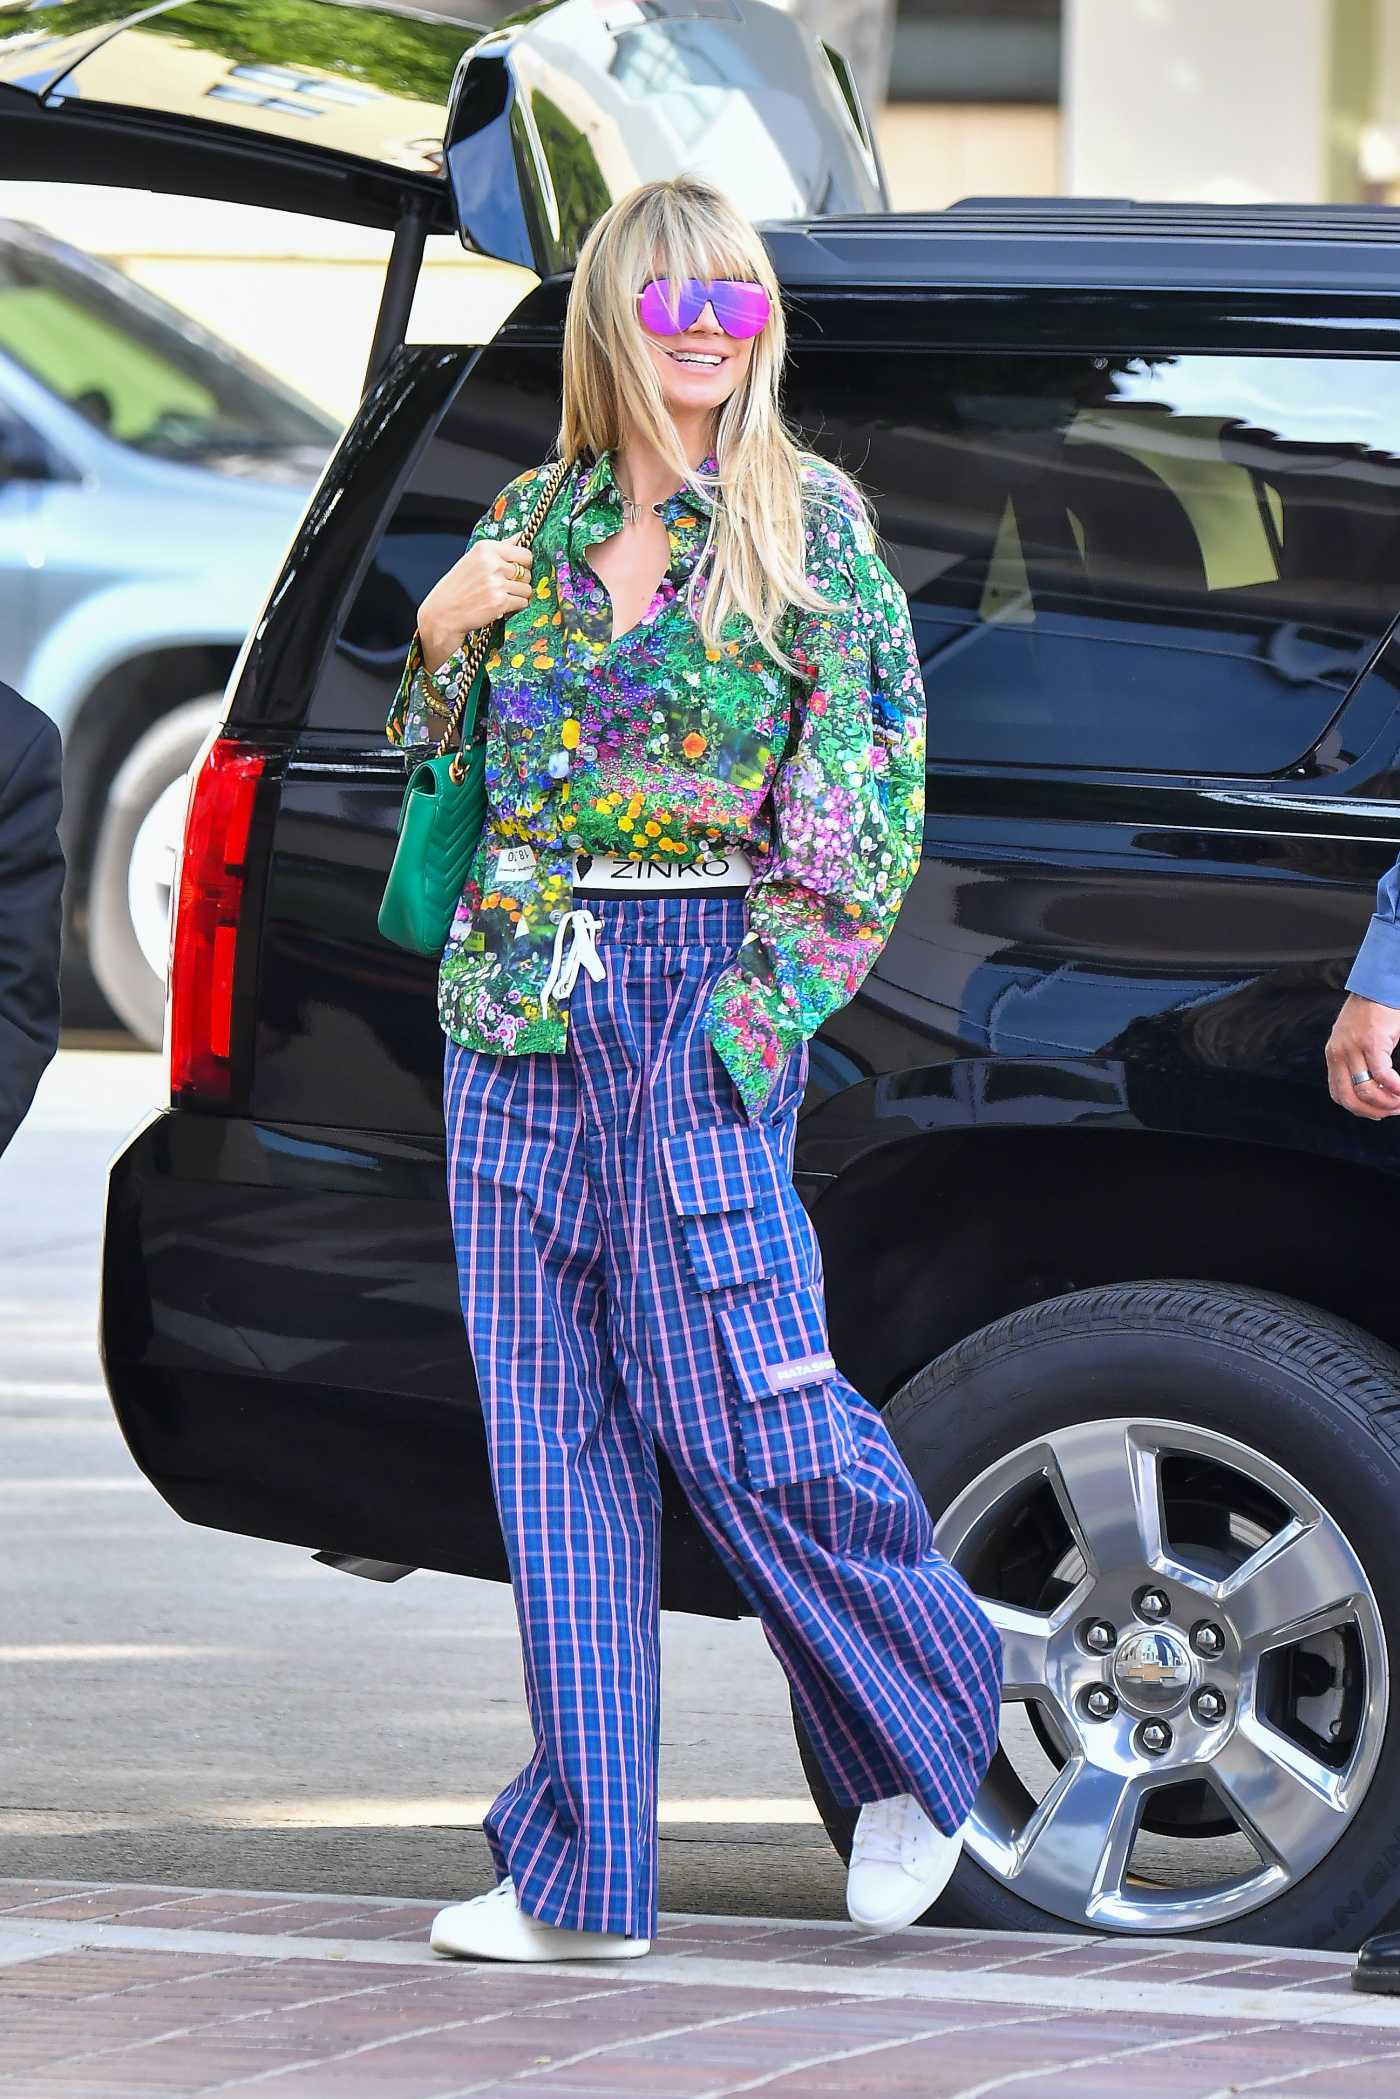 Heidi Klum in a Colorful Outfit Was Seen Out with Her Daughter in Pasadena 03/05/2020